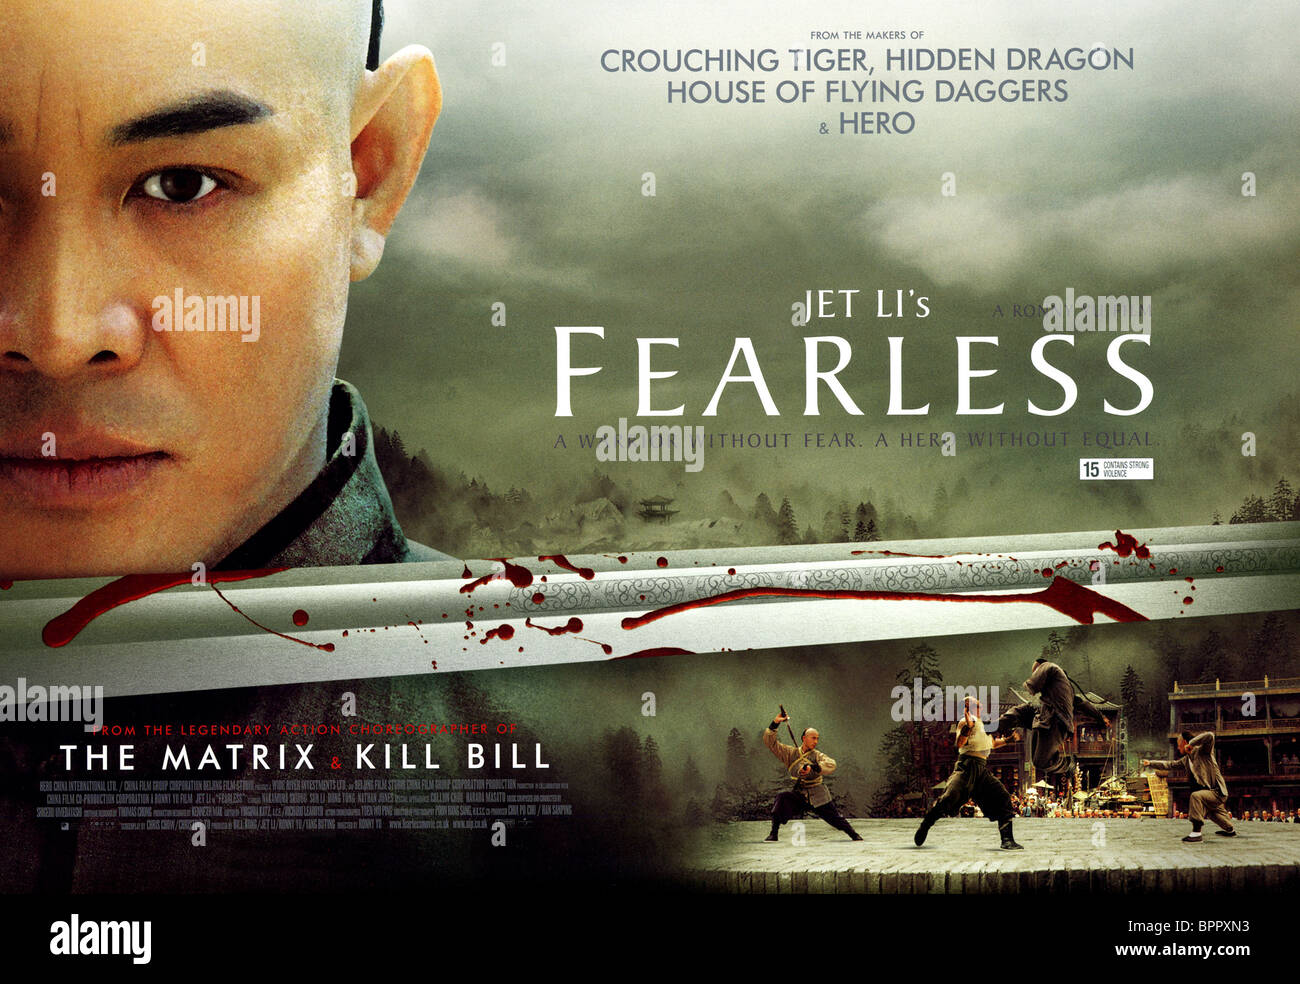 Movie Posters 2006: FILM POSTER FEARLESS: HUO YUAN JIA (2006 Stock Photo